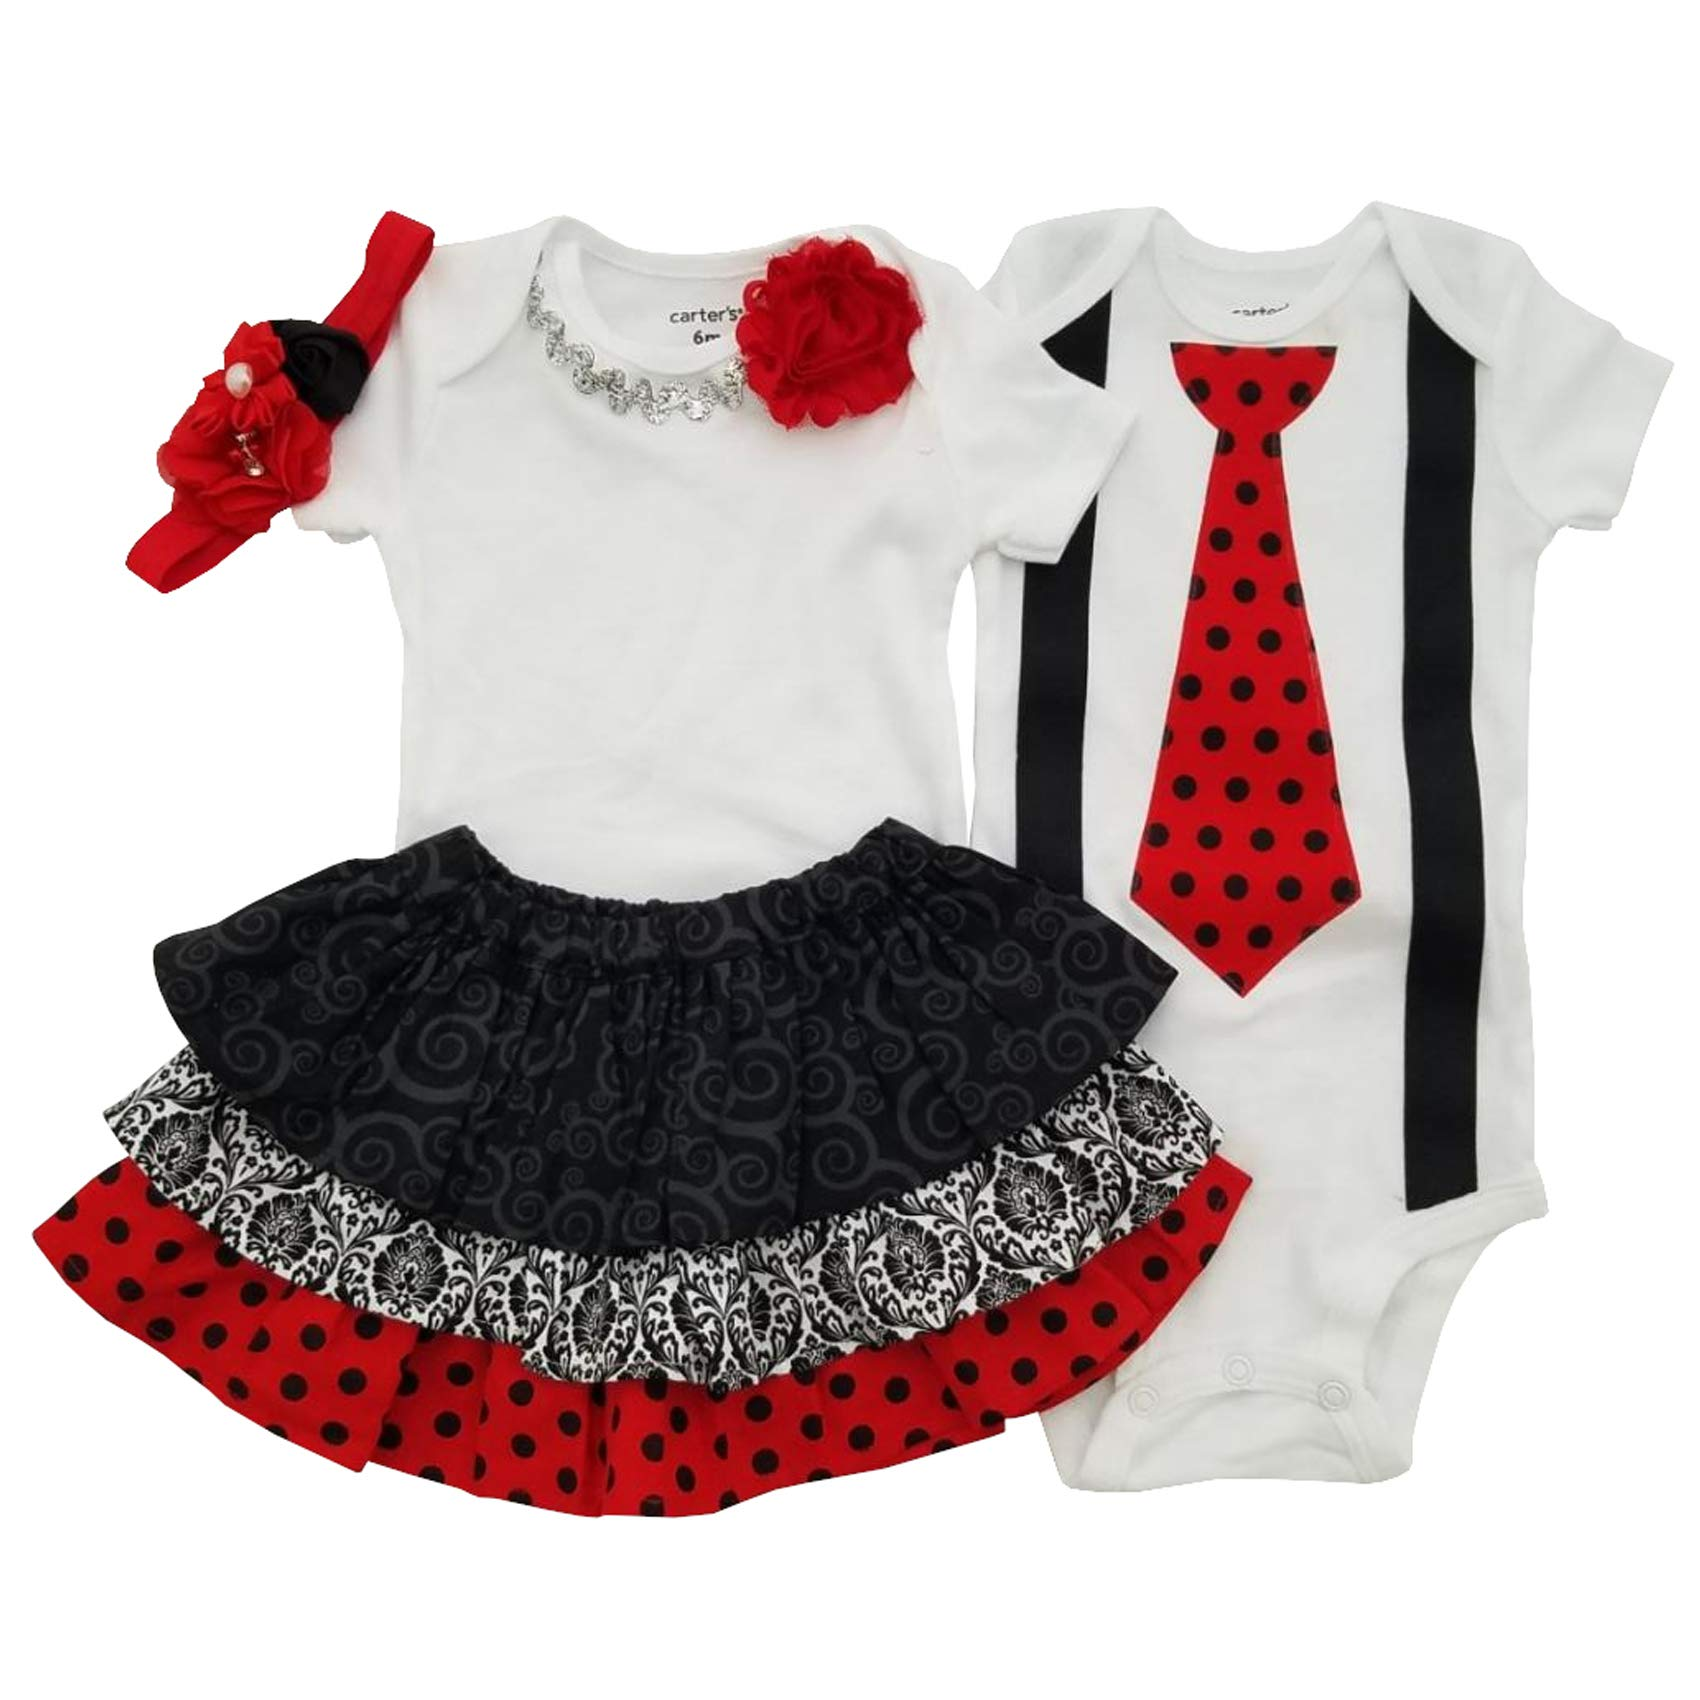 Perfect Pairz Boy Girl Twin Outfits Scarlett and Scott USA Made Outfit(09M Long Sleeve) by Perfect Pairz